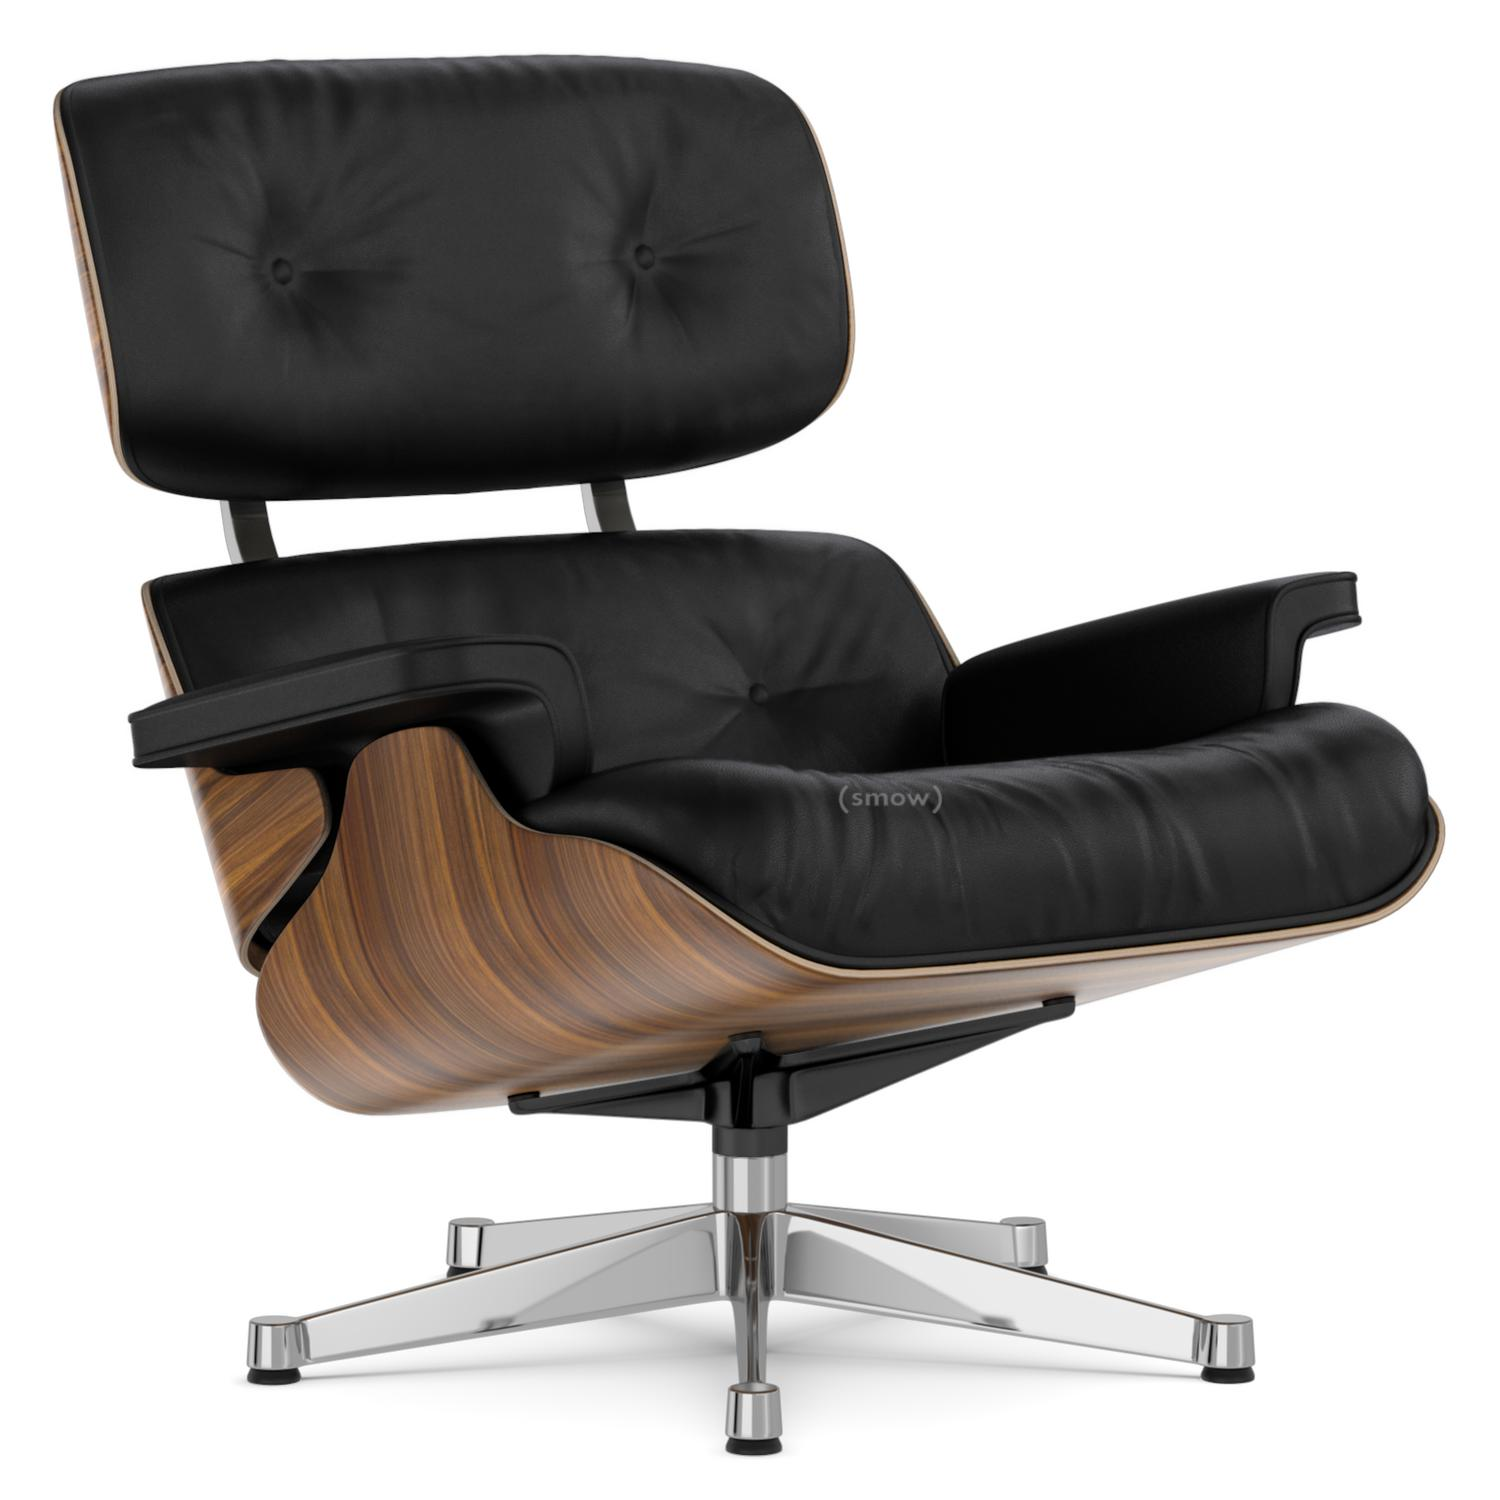 vitra lounge chair walnut with black pigmentation nero 89 cm